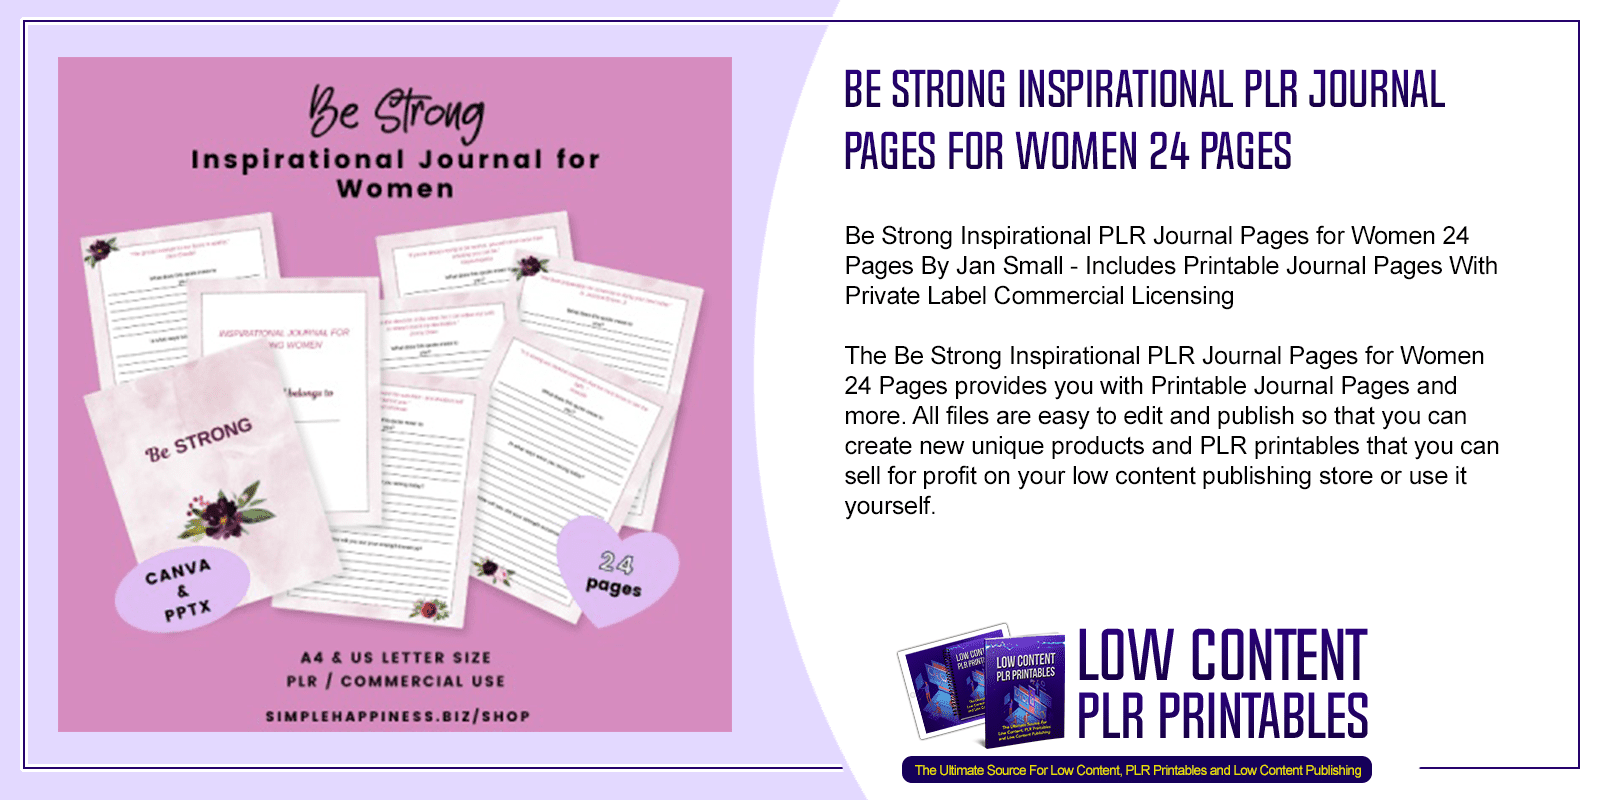 Be Strong Inspirational PLR Journal Pages for Women 24 Pages